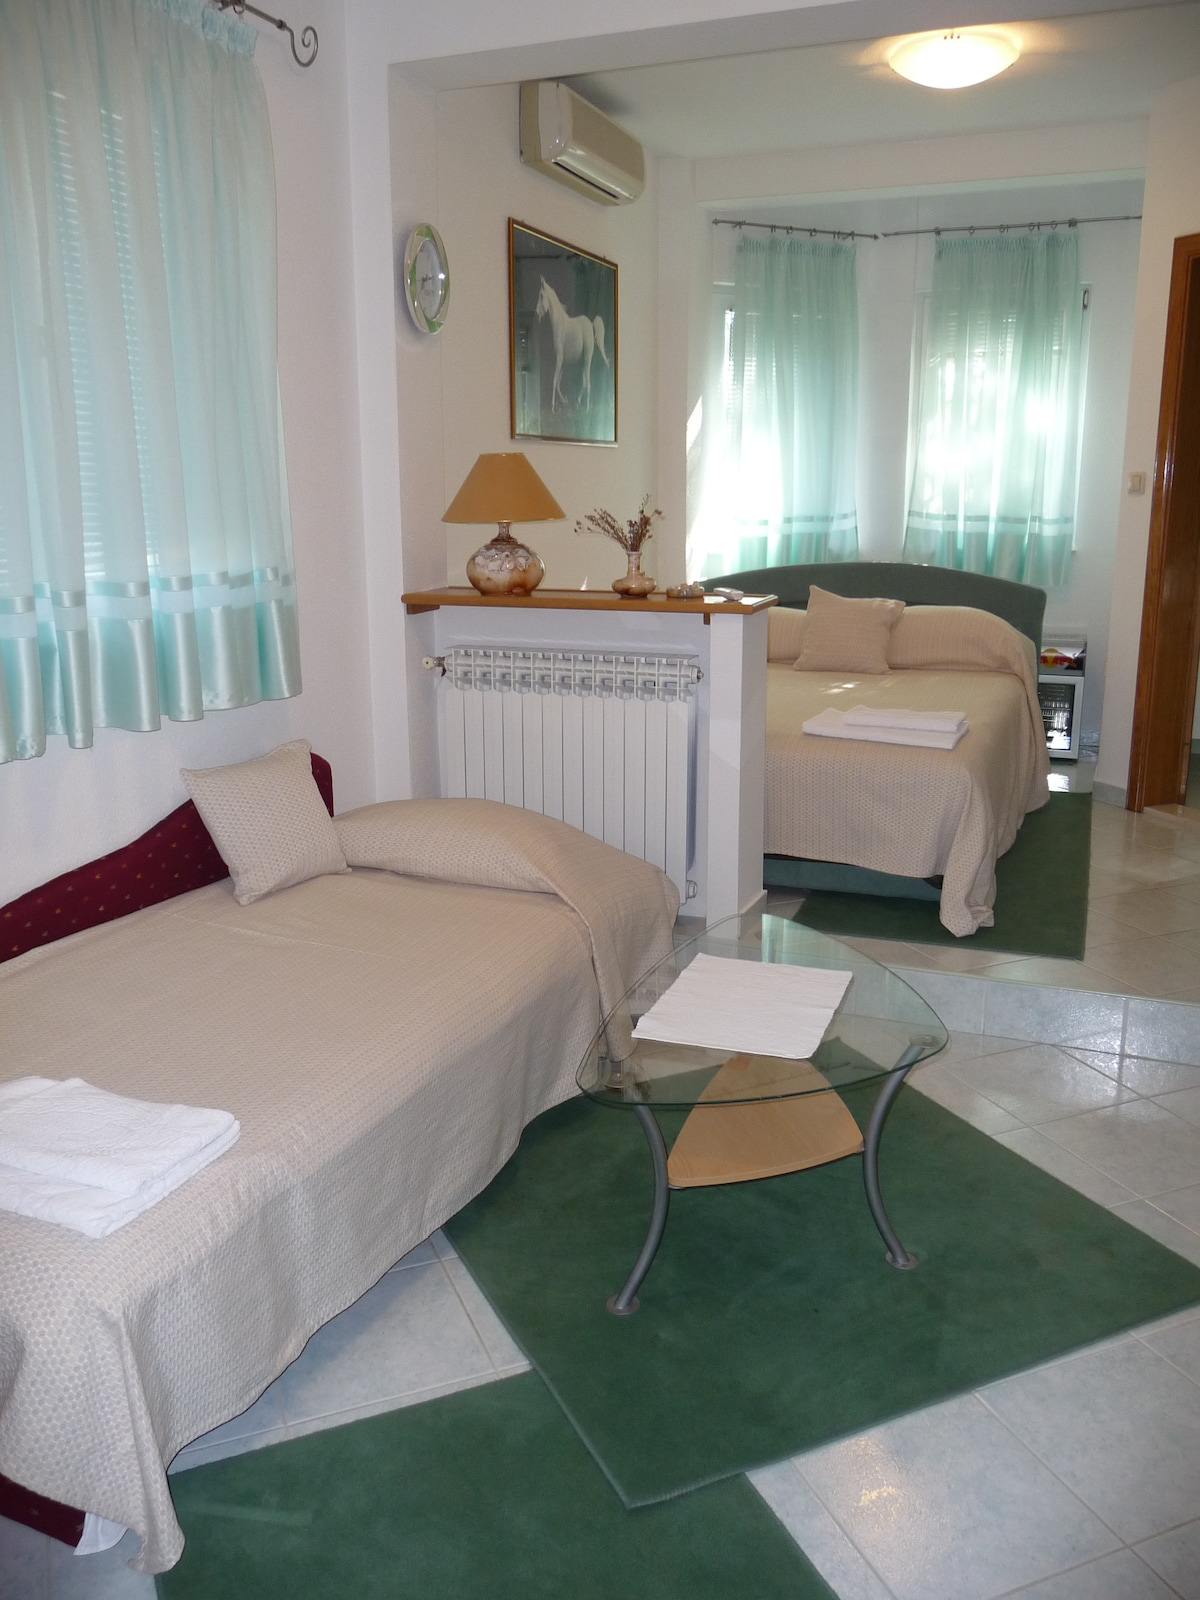 Private room in Mostar